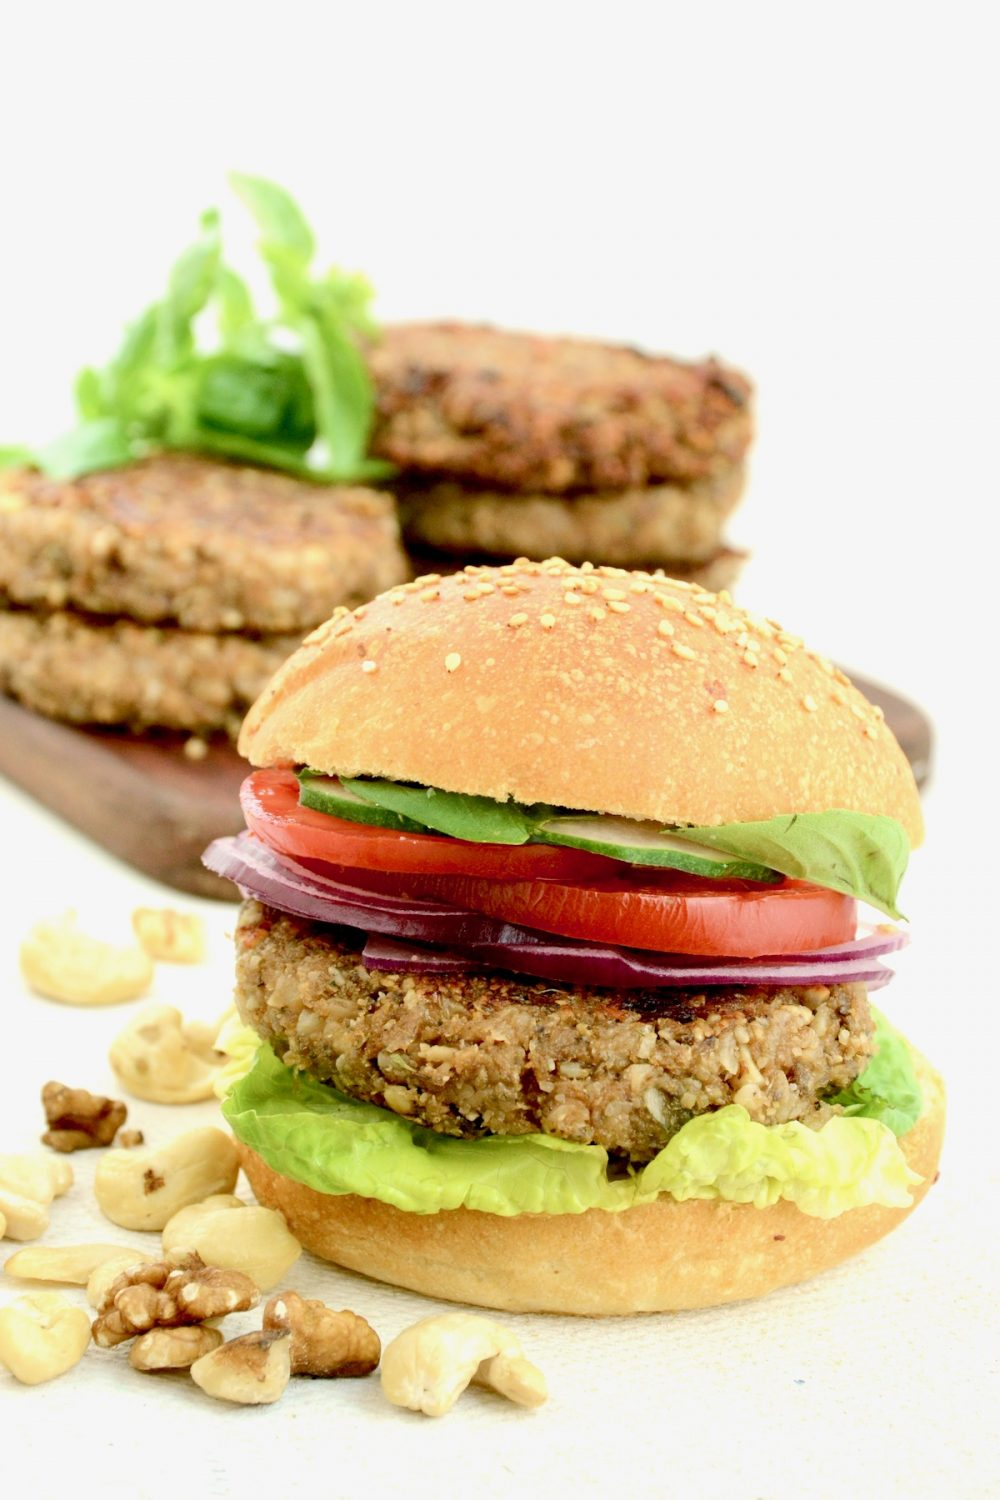 A nut burger with lettuce, tomato, red onion and cucumber in a burger bun. More nut patties are stacked in the background.